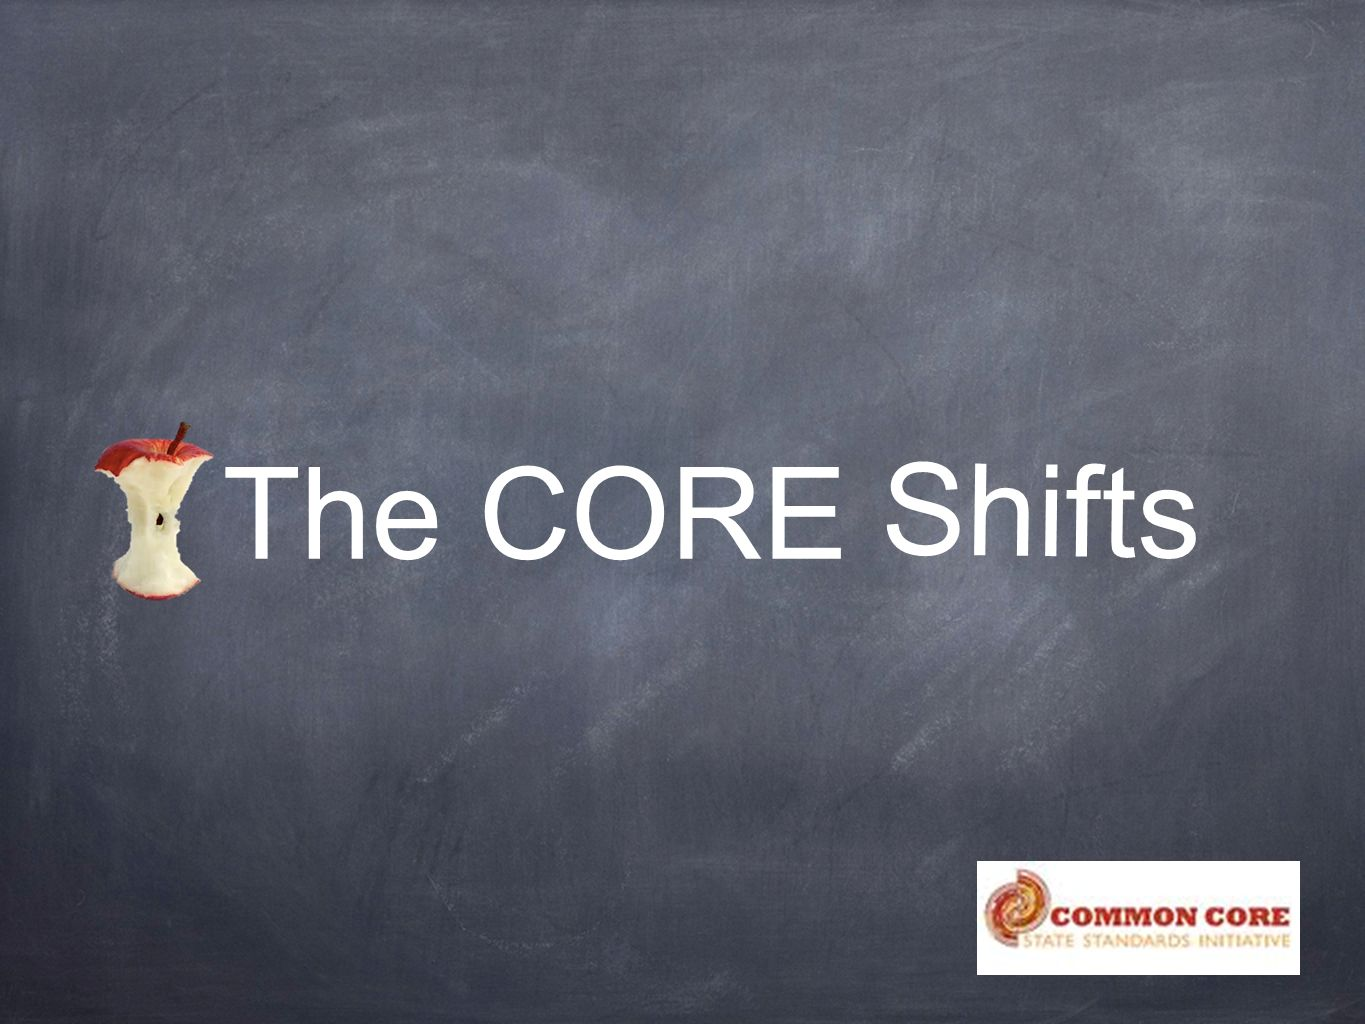 The CORE Shifts